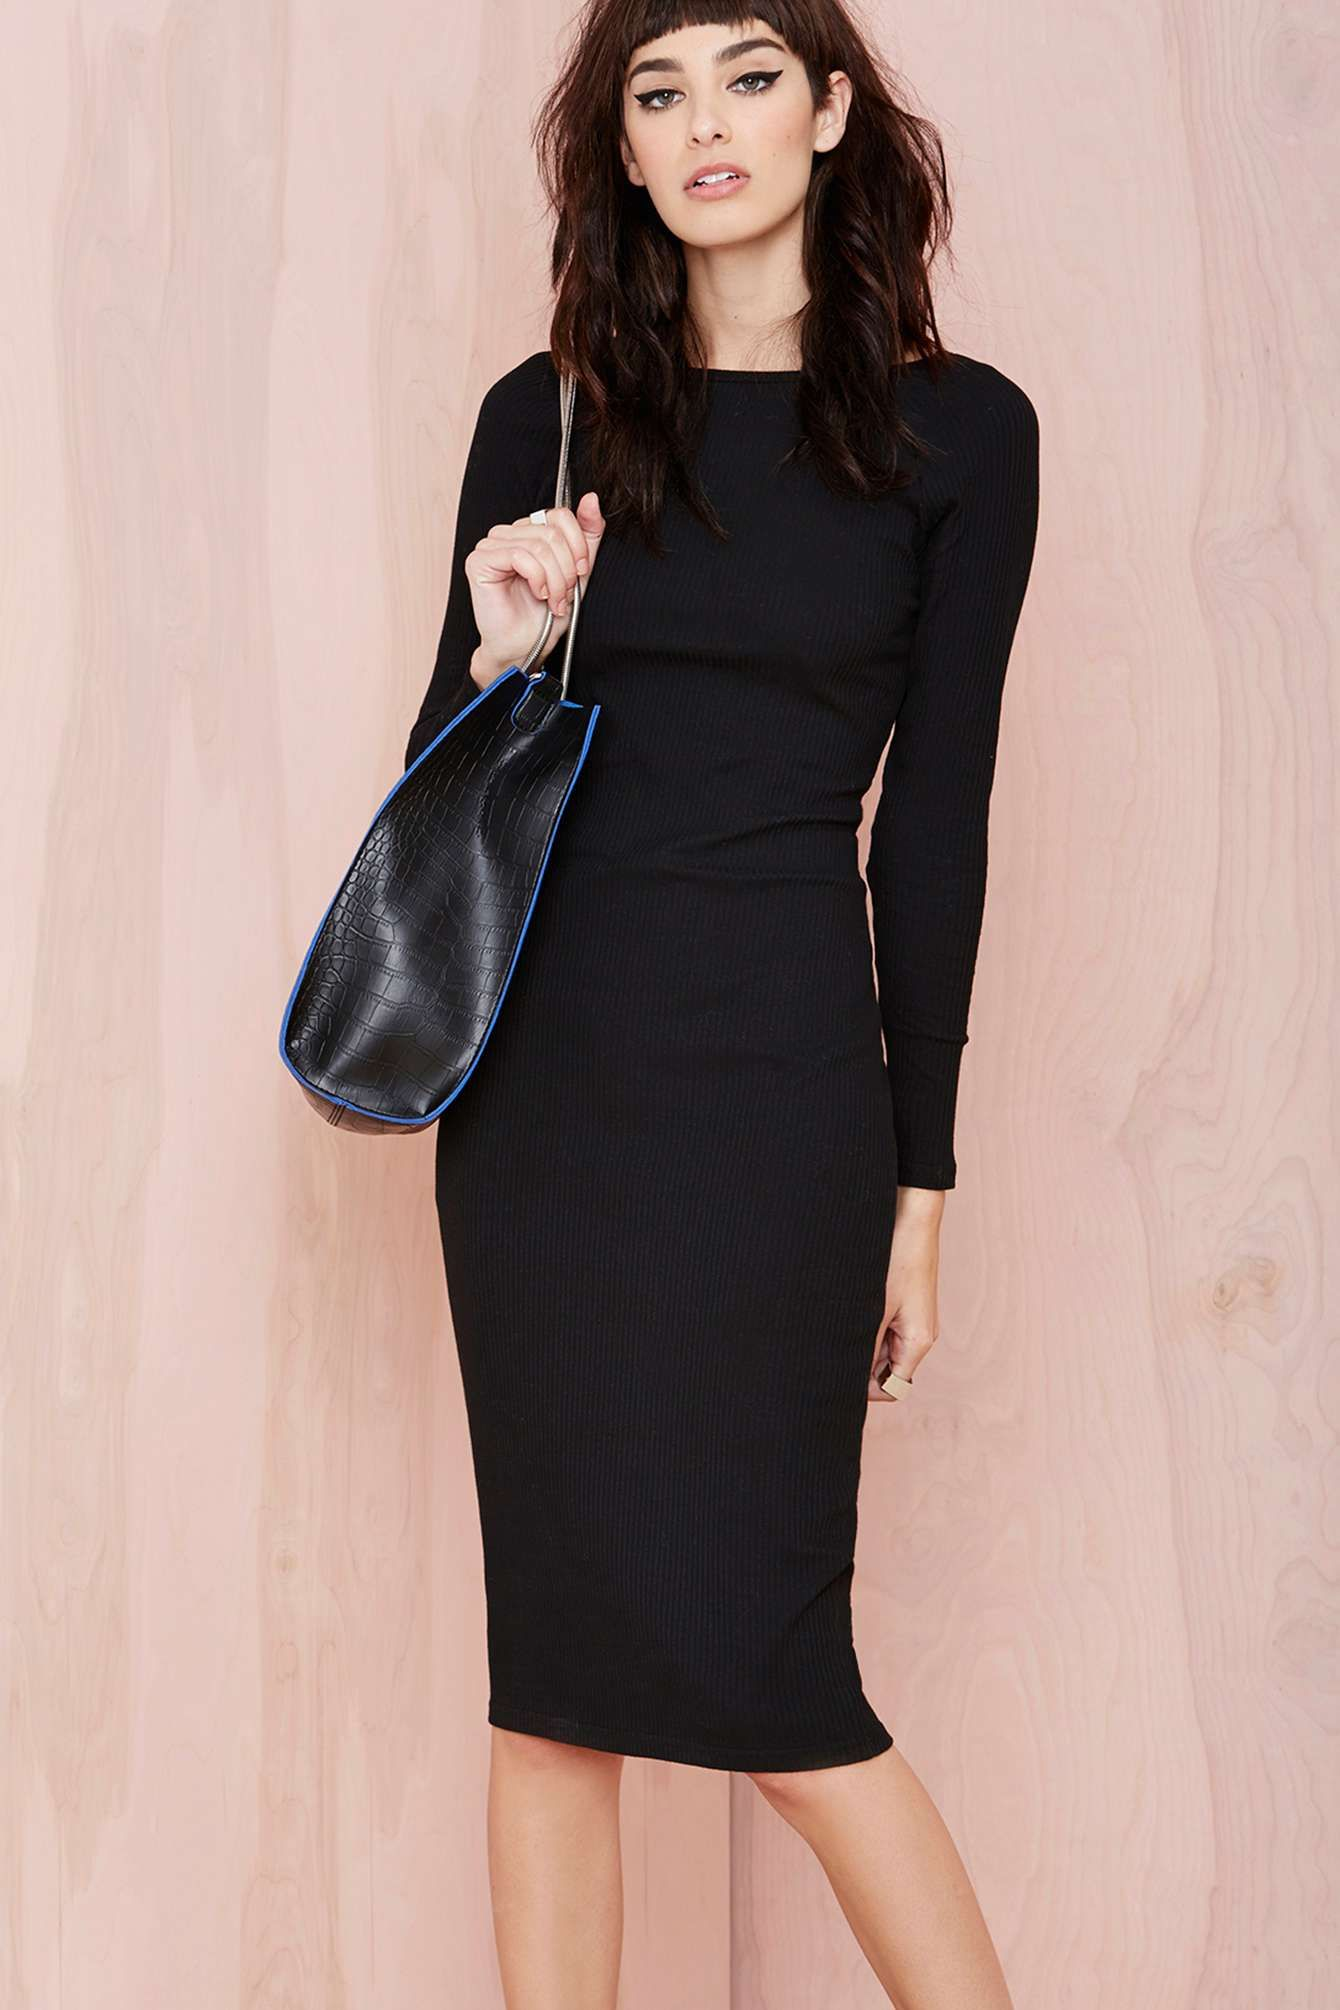 Tznius classic chic pinterest lbd black midi dress and midi